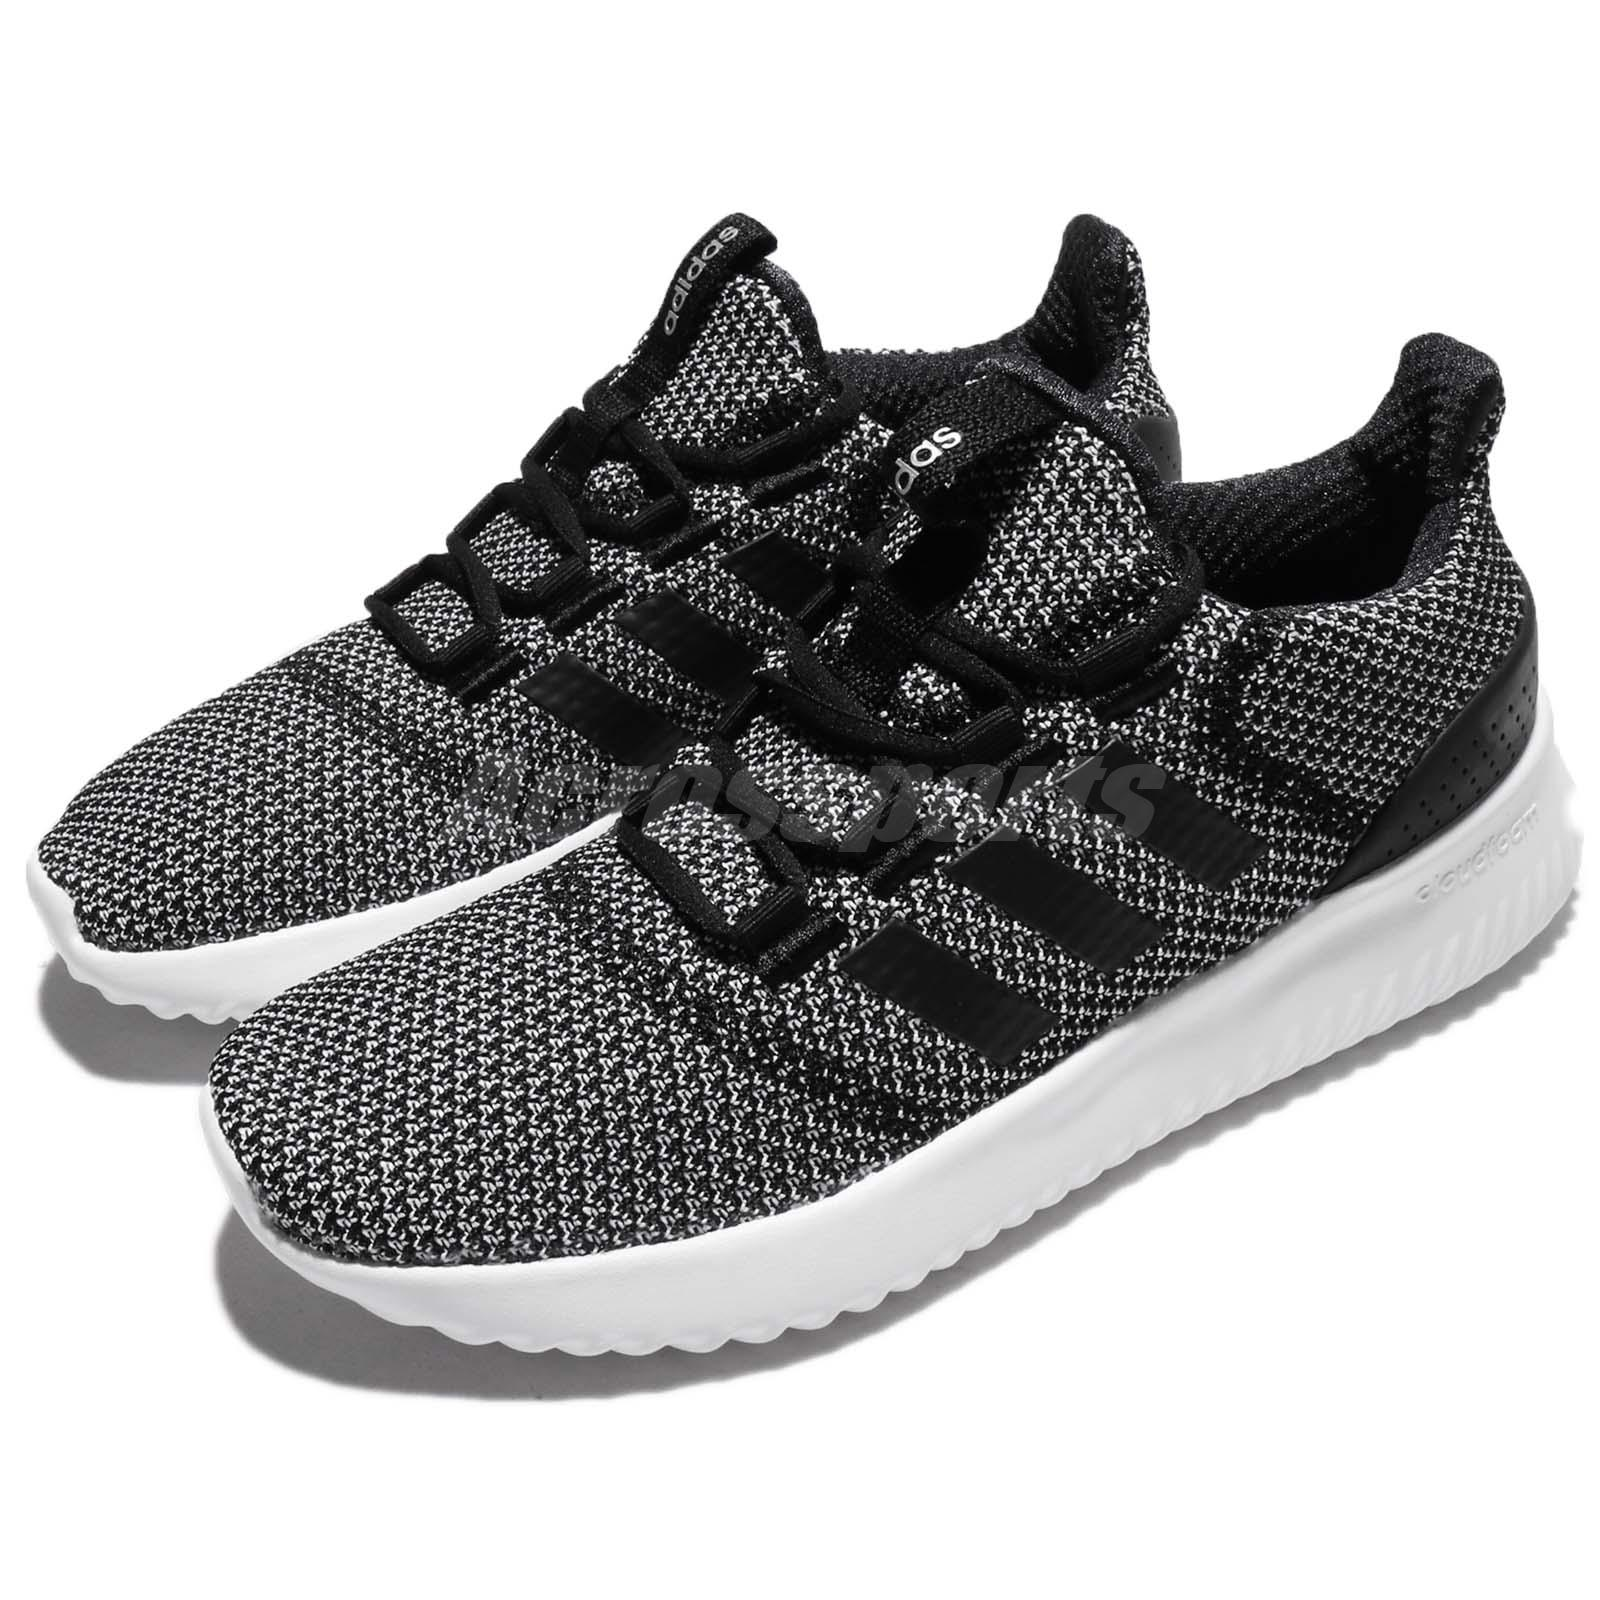 e01c2ae1c Details about adidas Neo Cloudfoam Ultimate Black White Women Running Shoes  Trainers BC0033